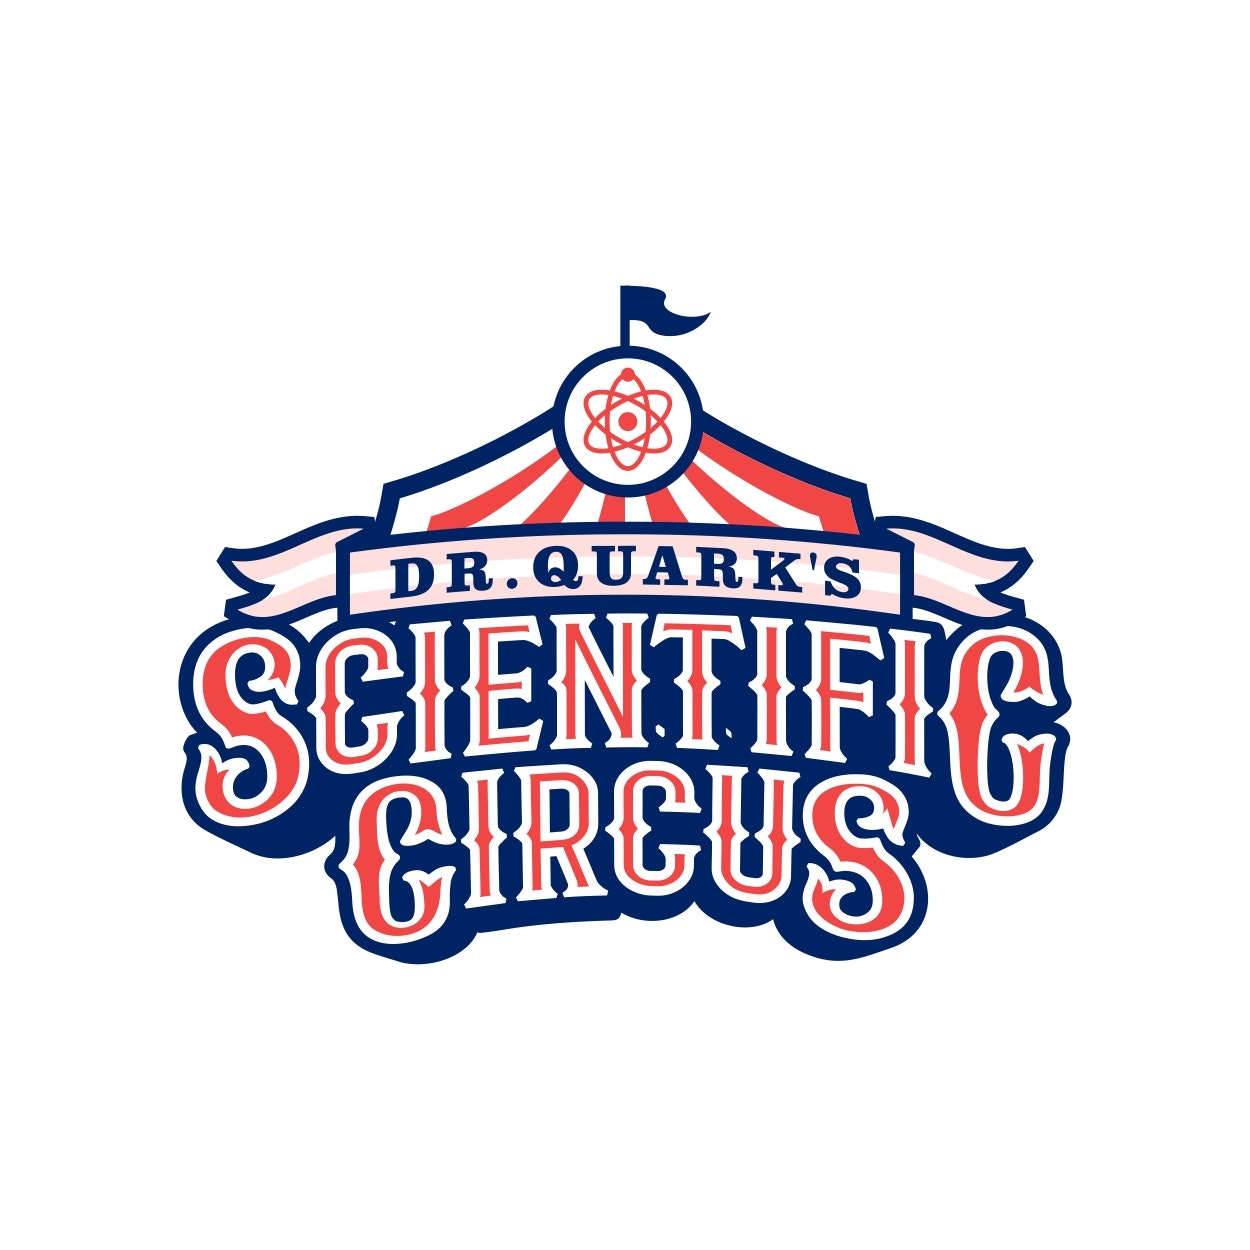 "image of an old-fashioned circus tent with the text ""dr. quark's scientific circus"""